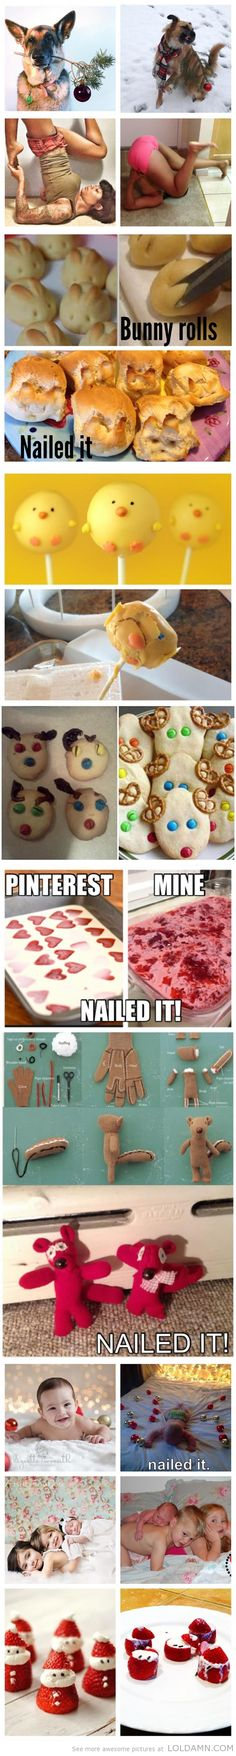 Nailed it!!- The Best of Pinterest Fails…